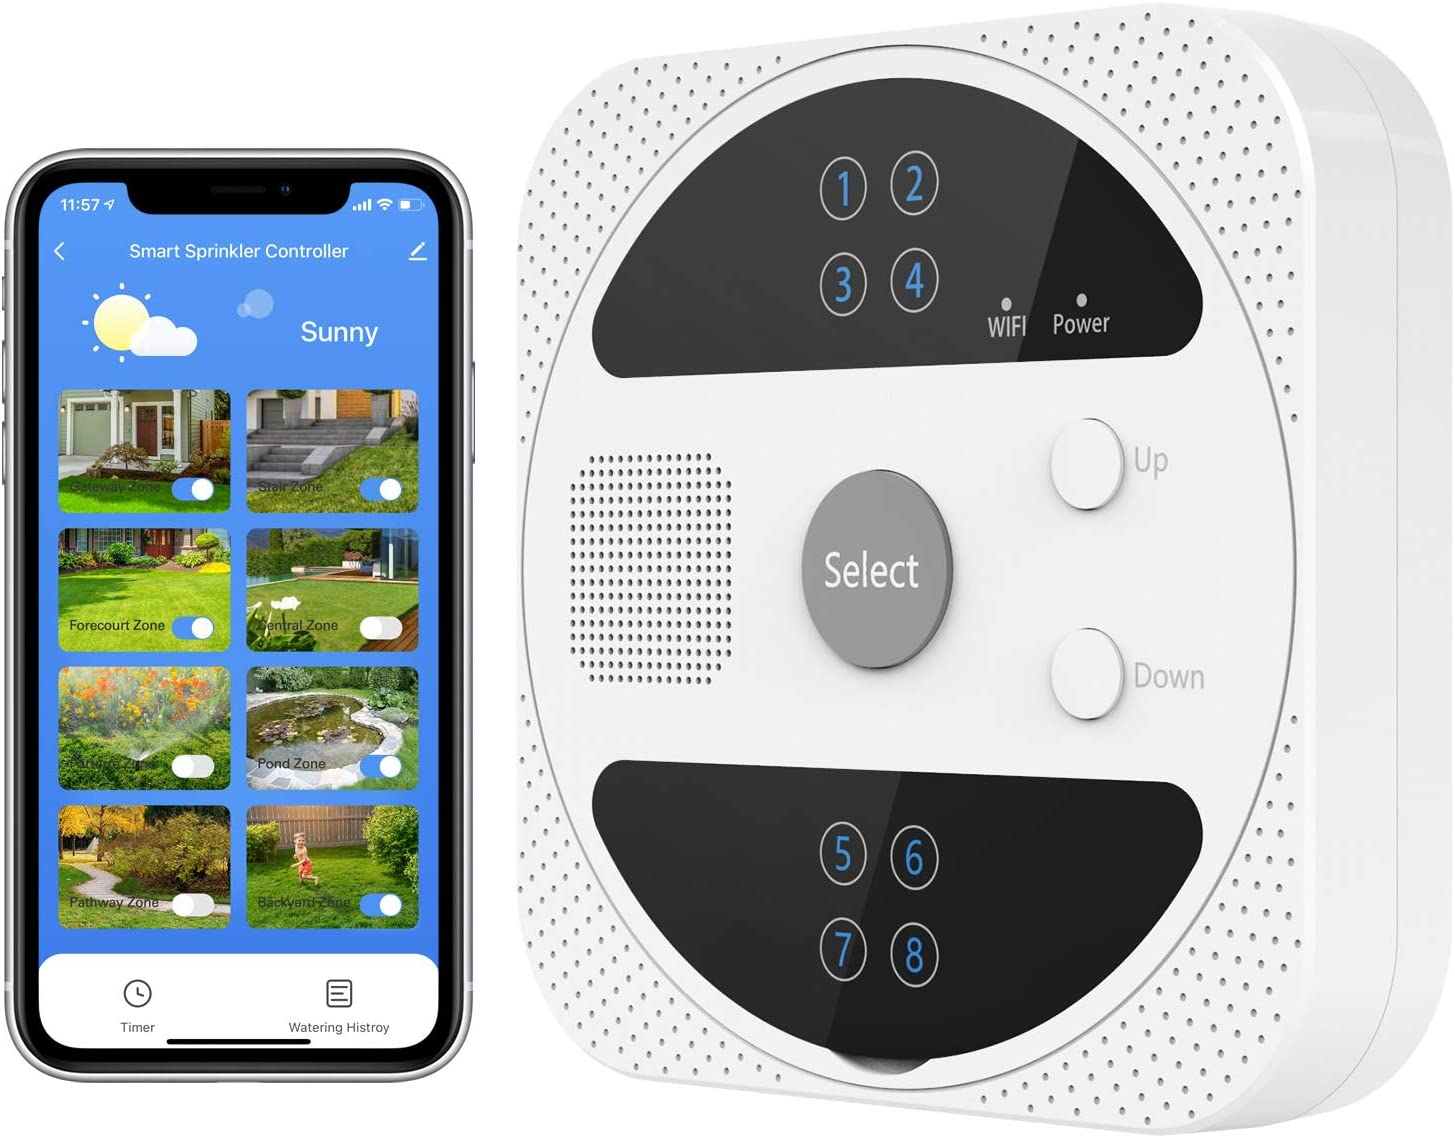 MoKo Smart Lawn Sprinkler Controller, Smart WiFi Irrigation Controller 8 Zone Outdoor Wireless Irrigation System Timer, Weather Intelligence, Work with Alexa/Google Assistant/Siri Shortcuts, White